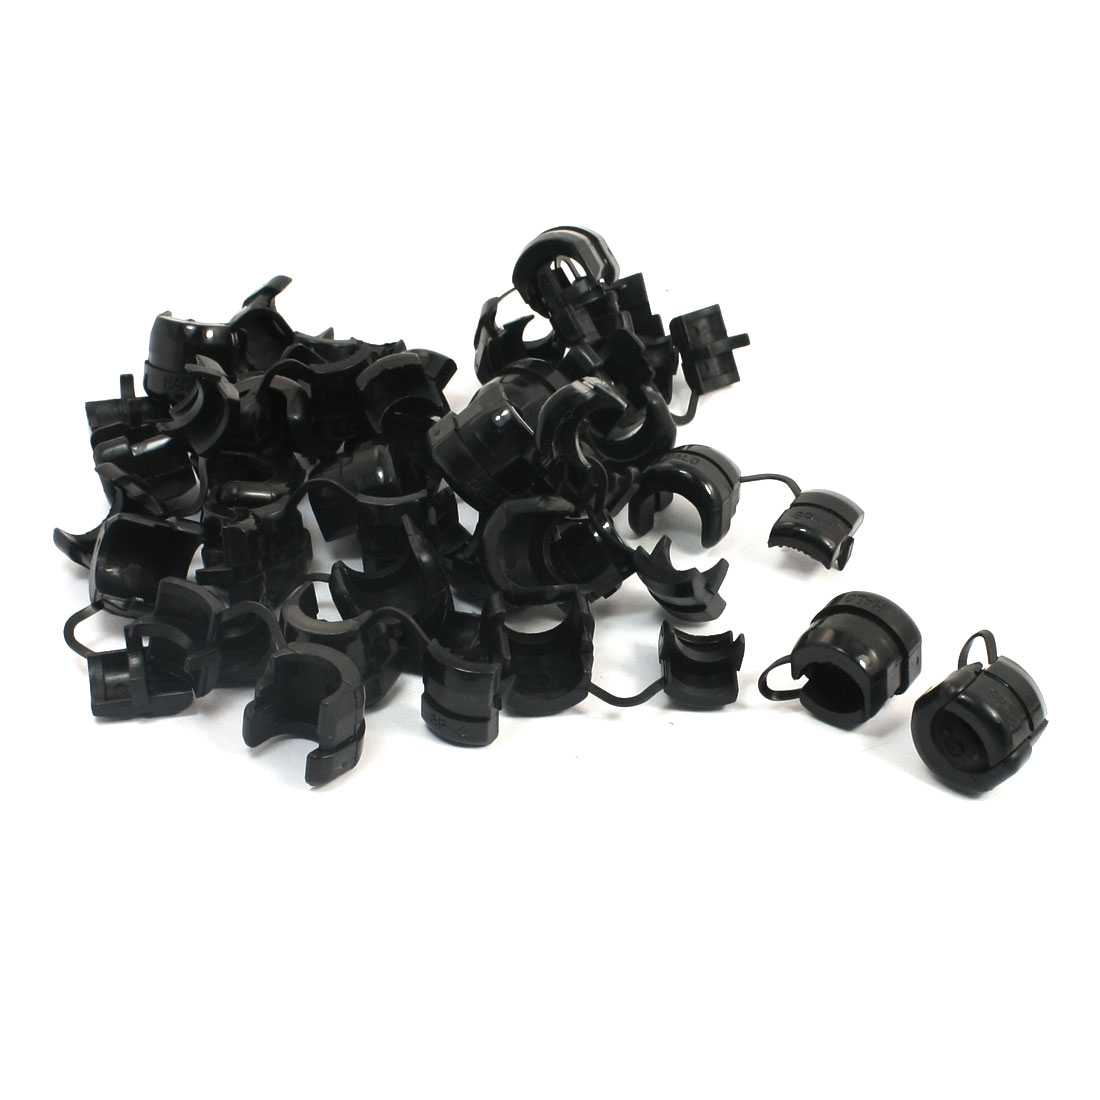 30 Pcs 13mm Diameter Nylon Round Wire Cord Clip Clamp Strain Relief Bushing